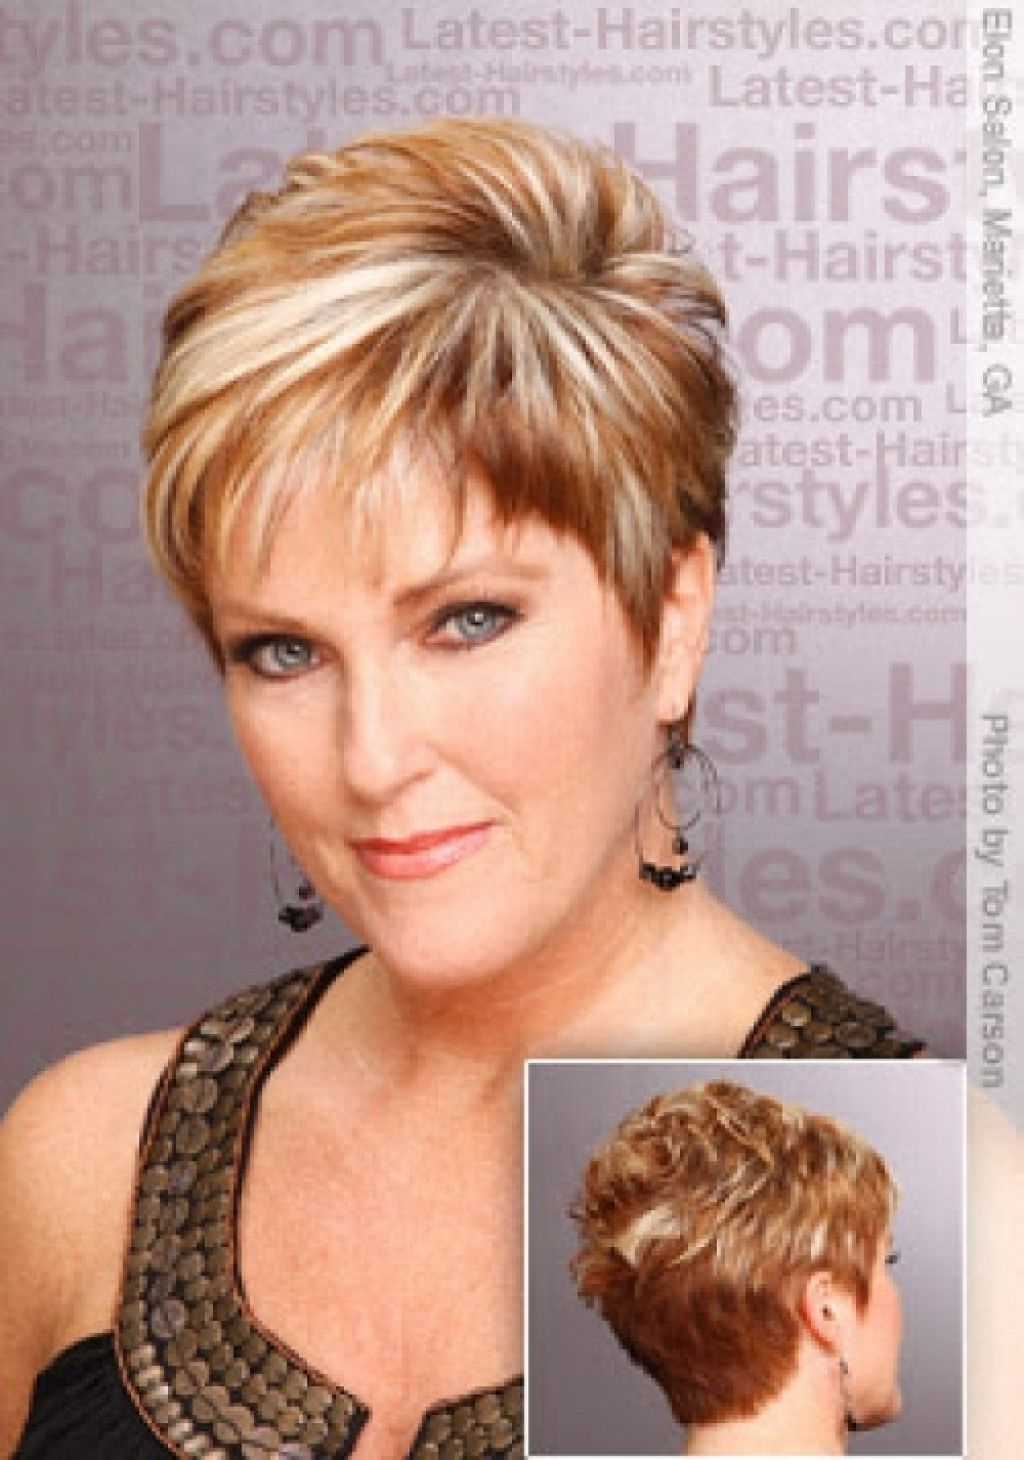 Find Out Full Gallery Of Beautiful Haircuts For Fat Women Over 40 Regarding Short Haircuts For Women Over 40 With Curly Hair (View 13 of 25)